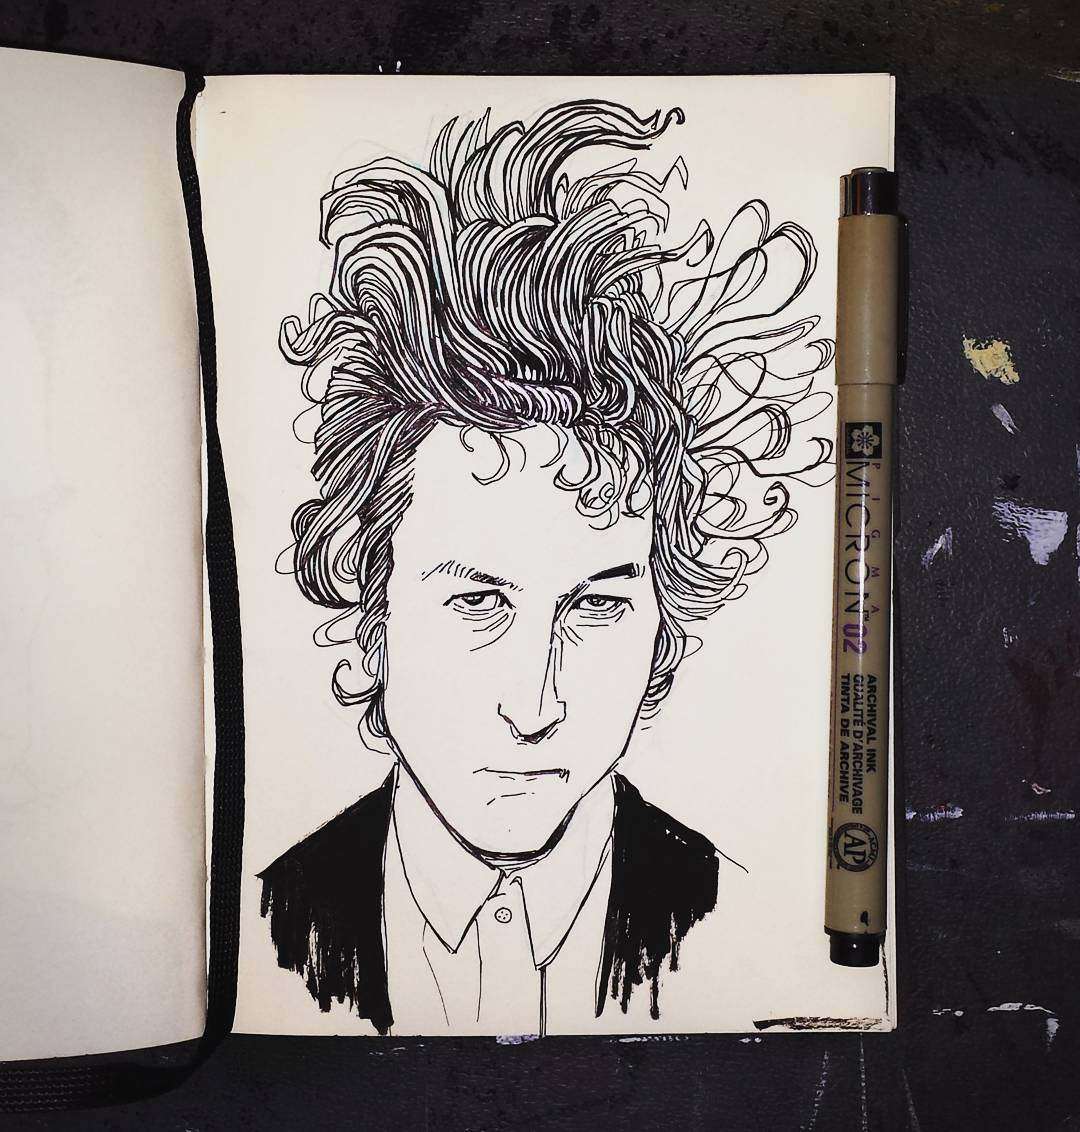 Bob Dylan portrait illustration